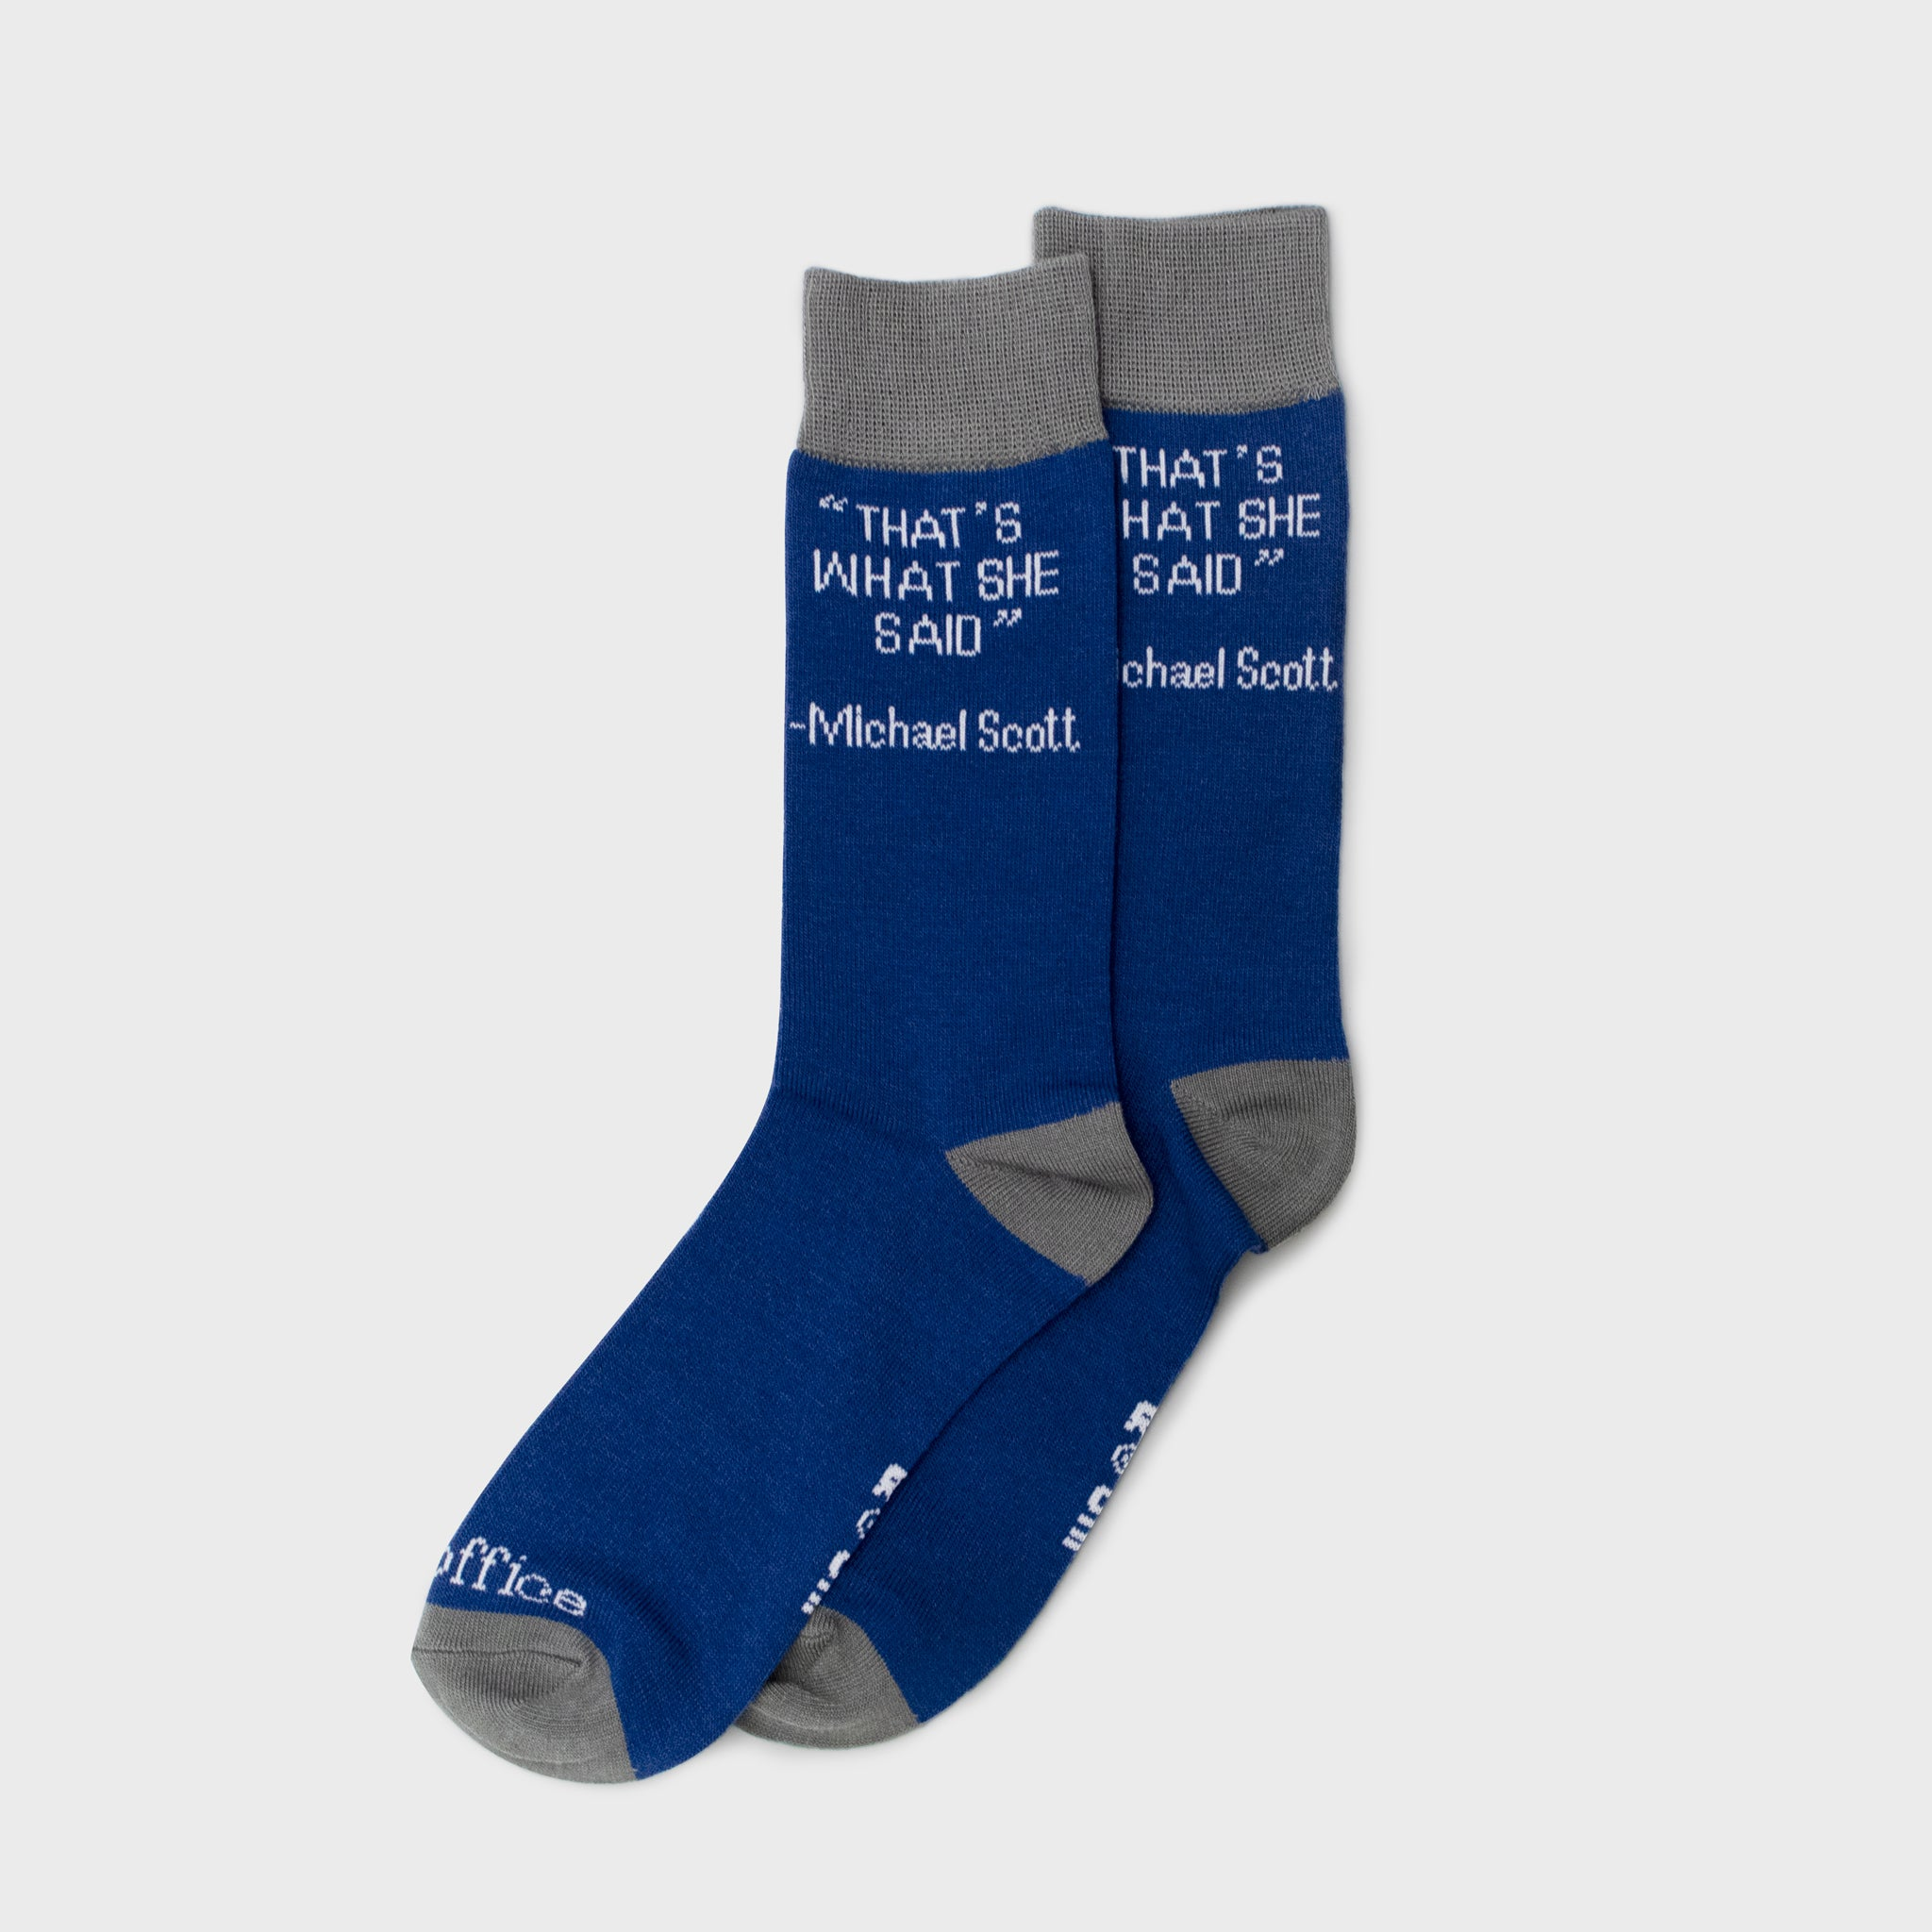 socks crew socks accessories apparel the office that's what she said culturefly